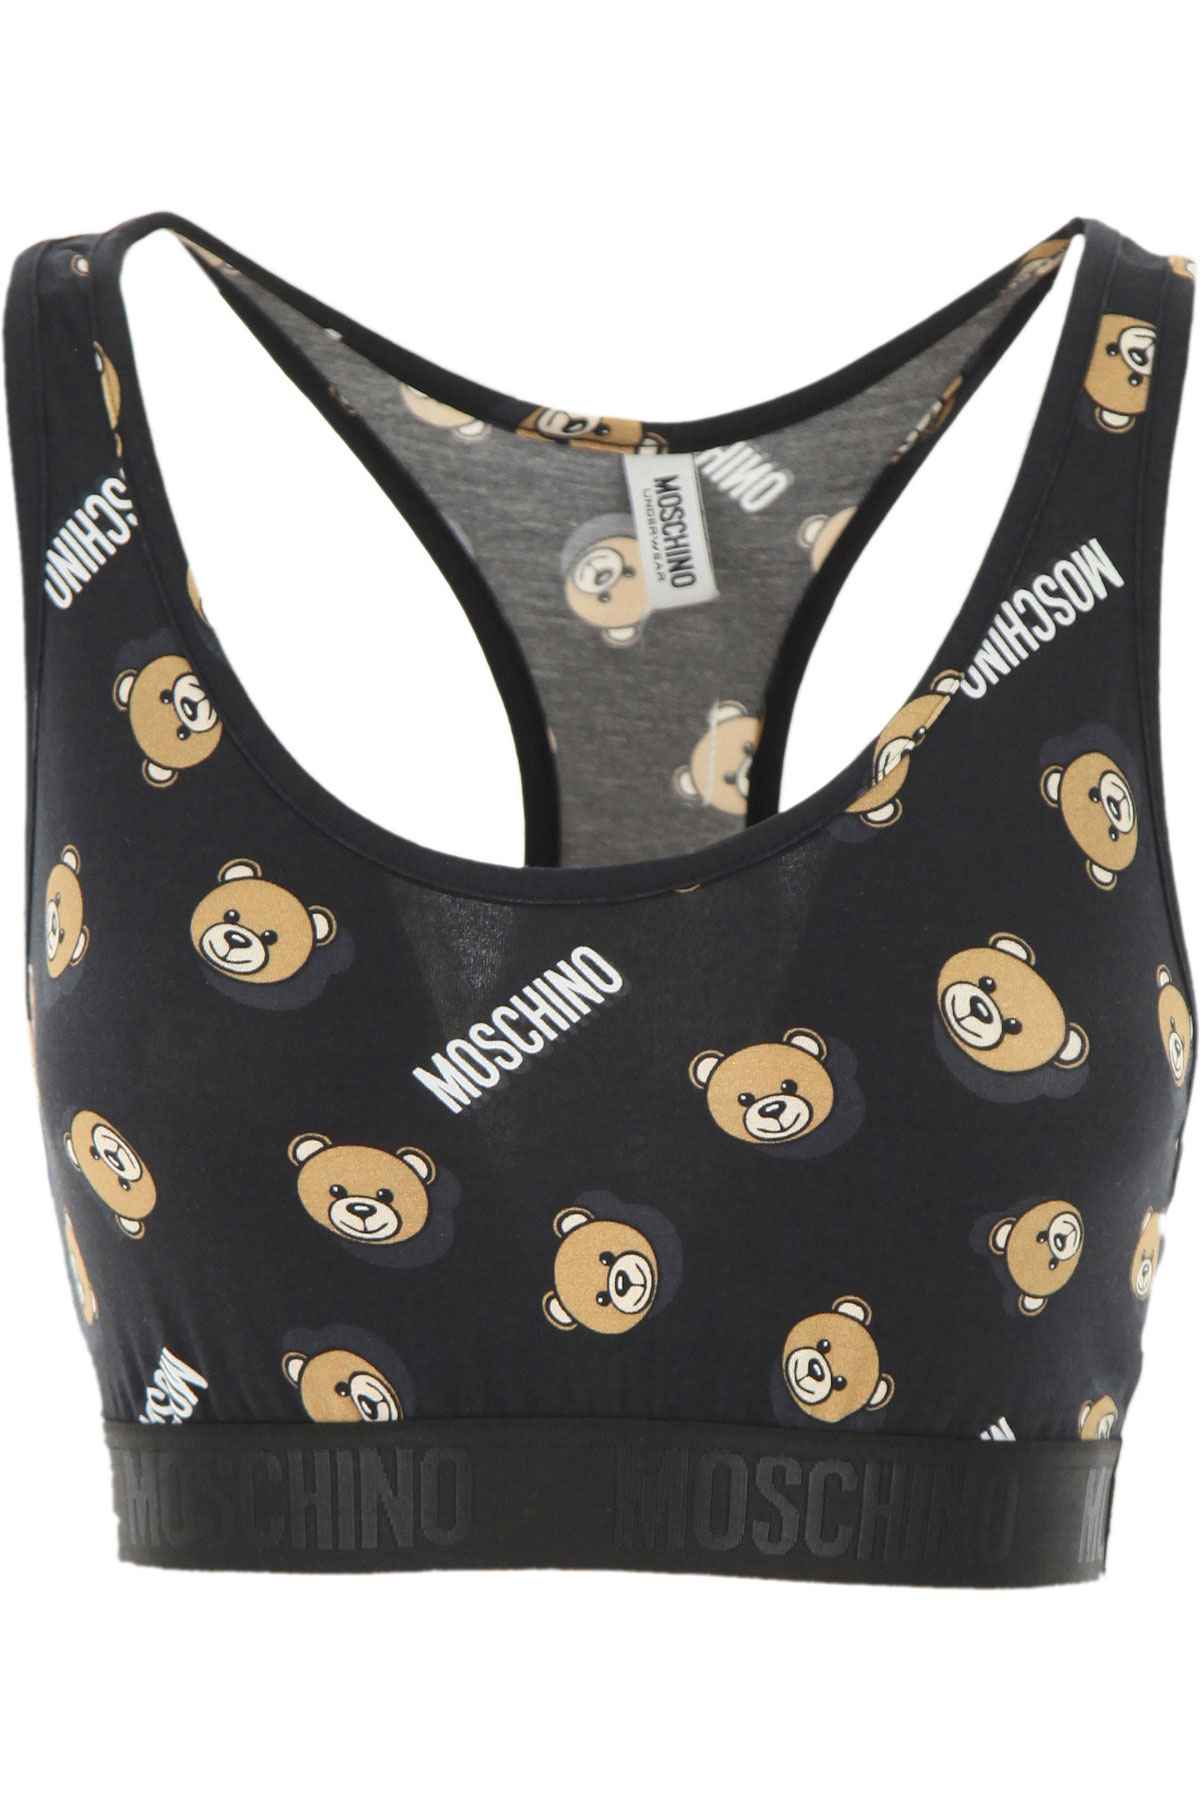 Moschino Women's Sportswear for Gym Workouts and Running On Sale, Black, Cotton, 2019, 2 4 6